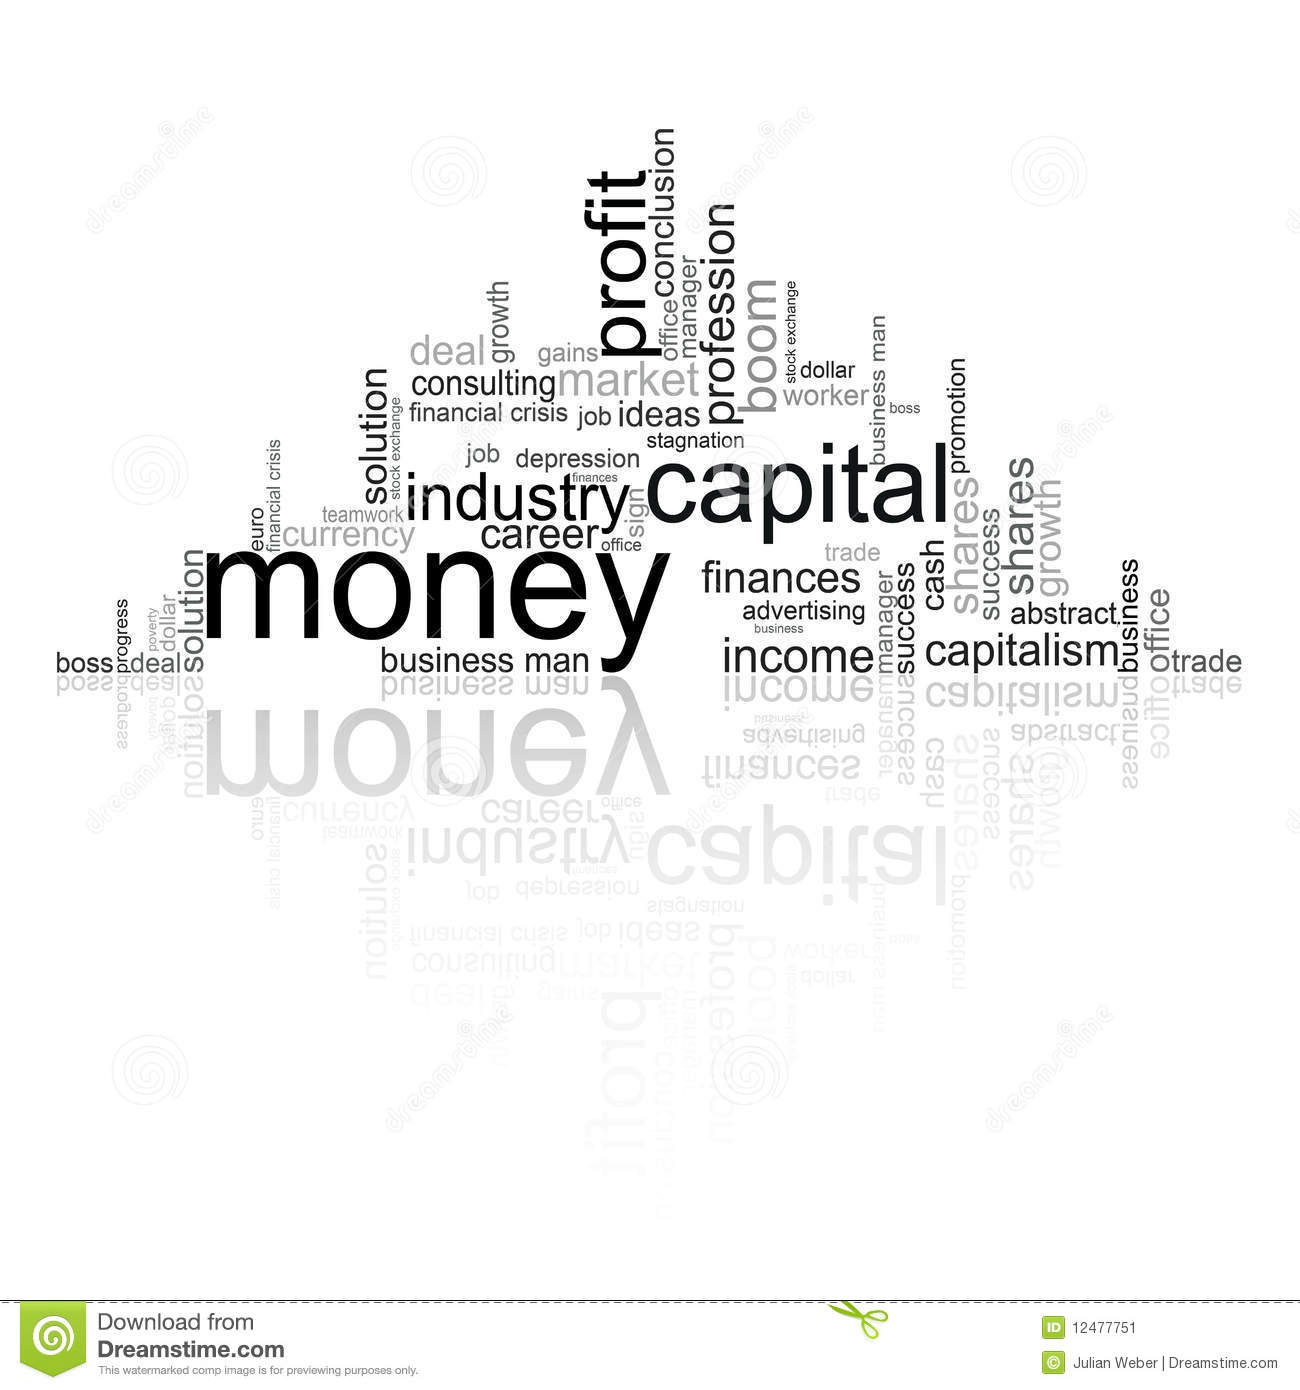 Spanish To English Dictionary Of Finance Terms